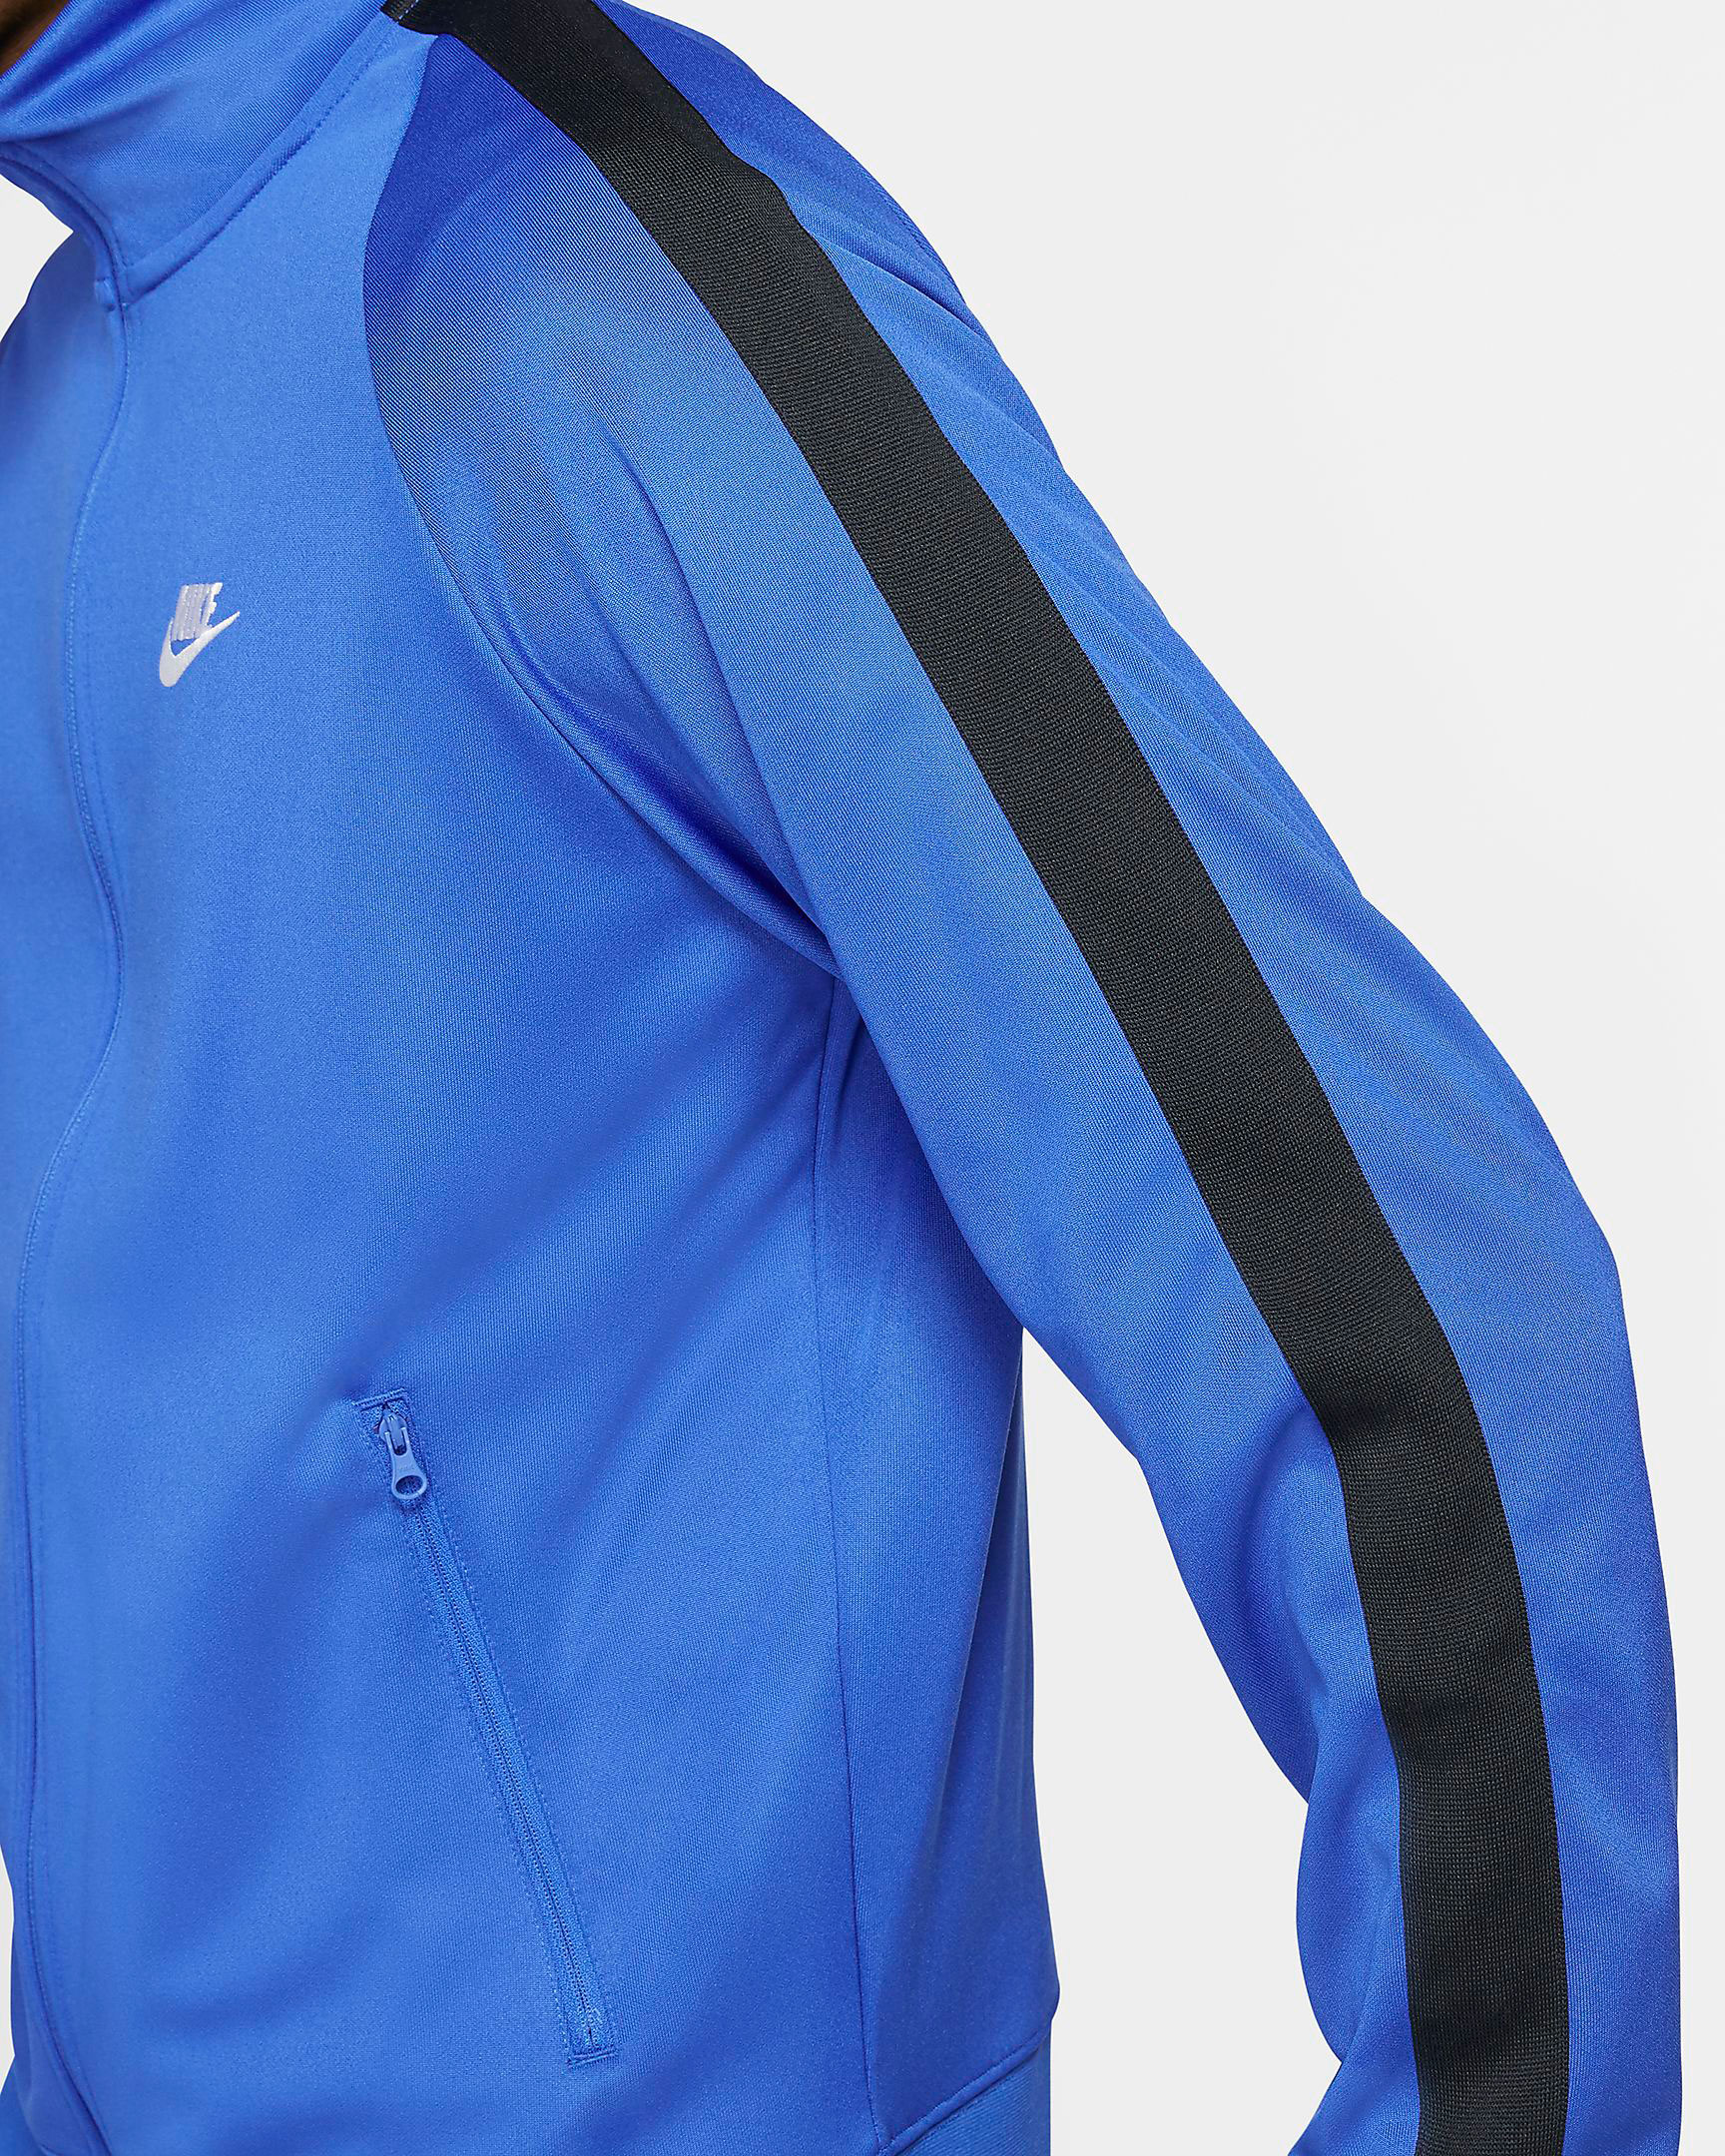 jordan-14-hyper-royal-blue-nike-track-jacket-match-5